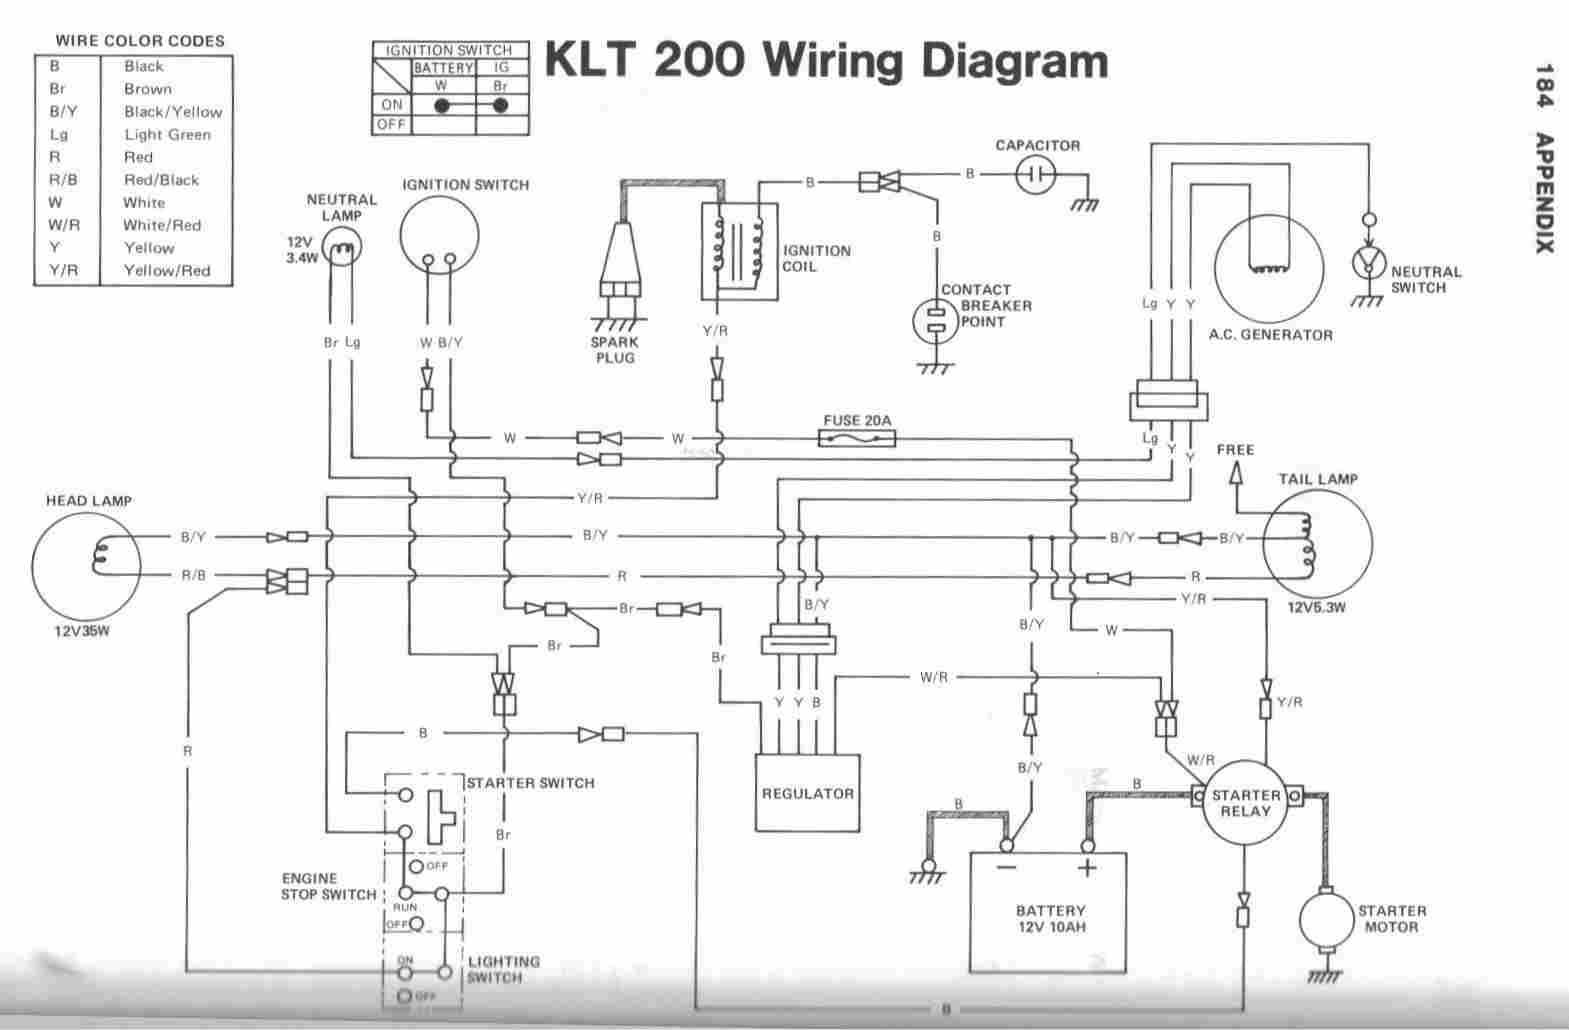 2869034594ce054a636782e5c44b61b4 wiring diagrams \u2022 woorishop co Basic Electrical Wiring Diagrams at reclaimingppi.co